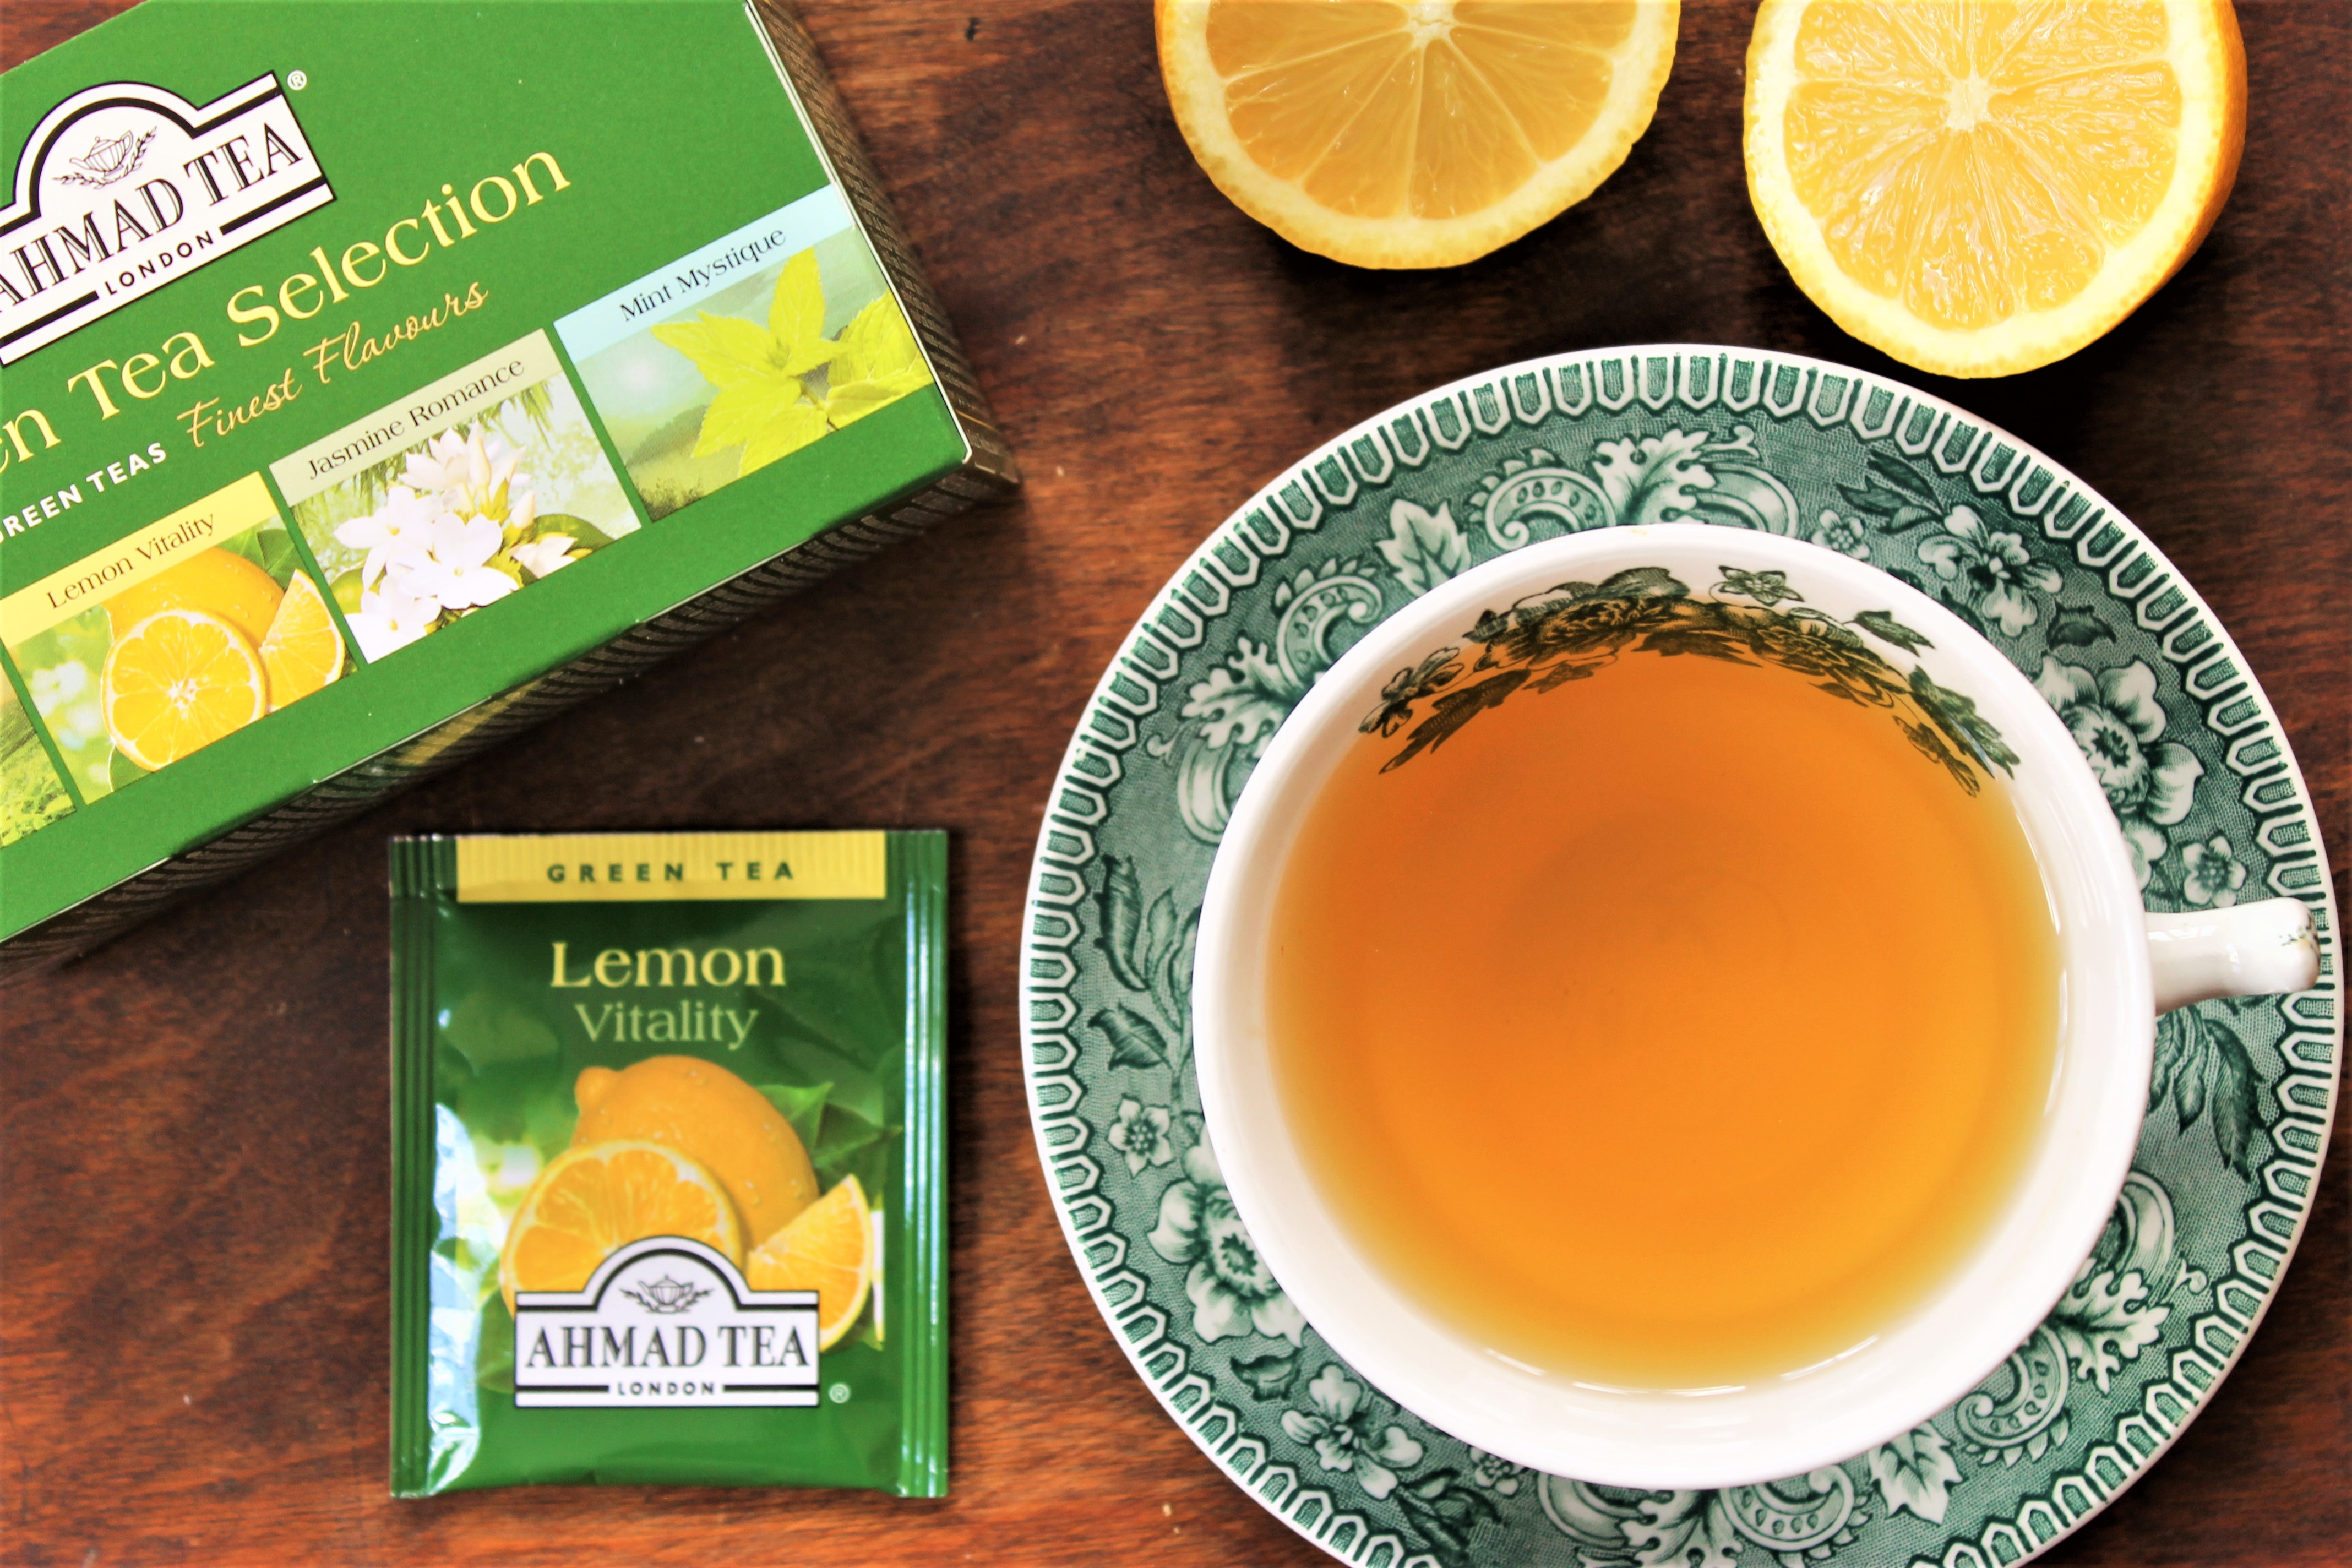 Ahmad Tea Lemon Vitality Review